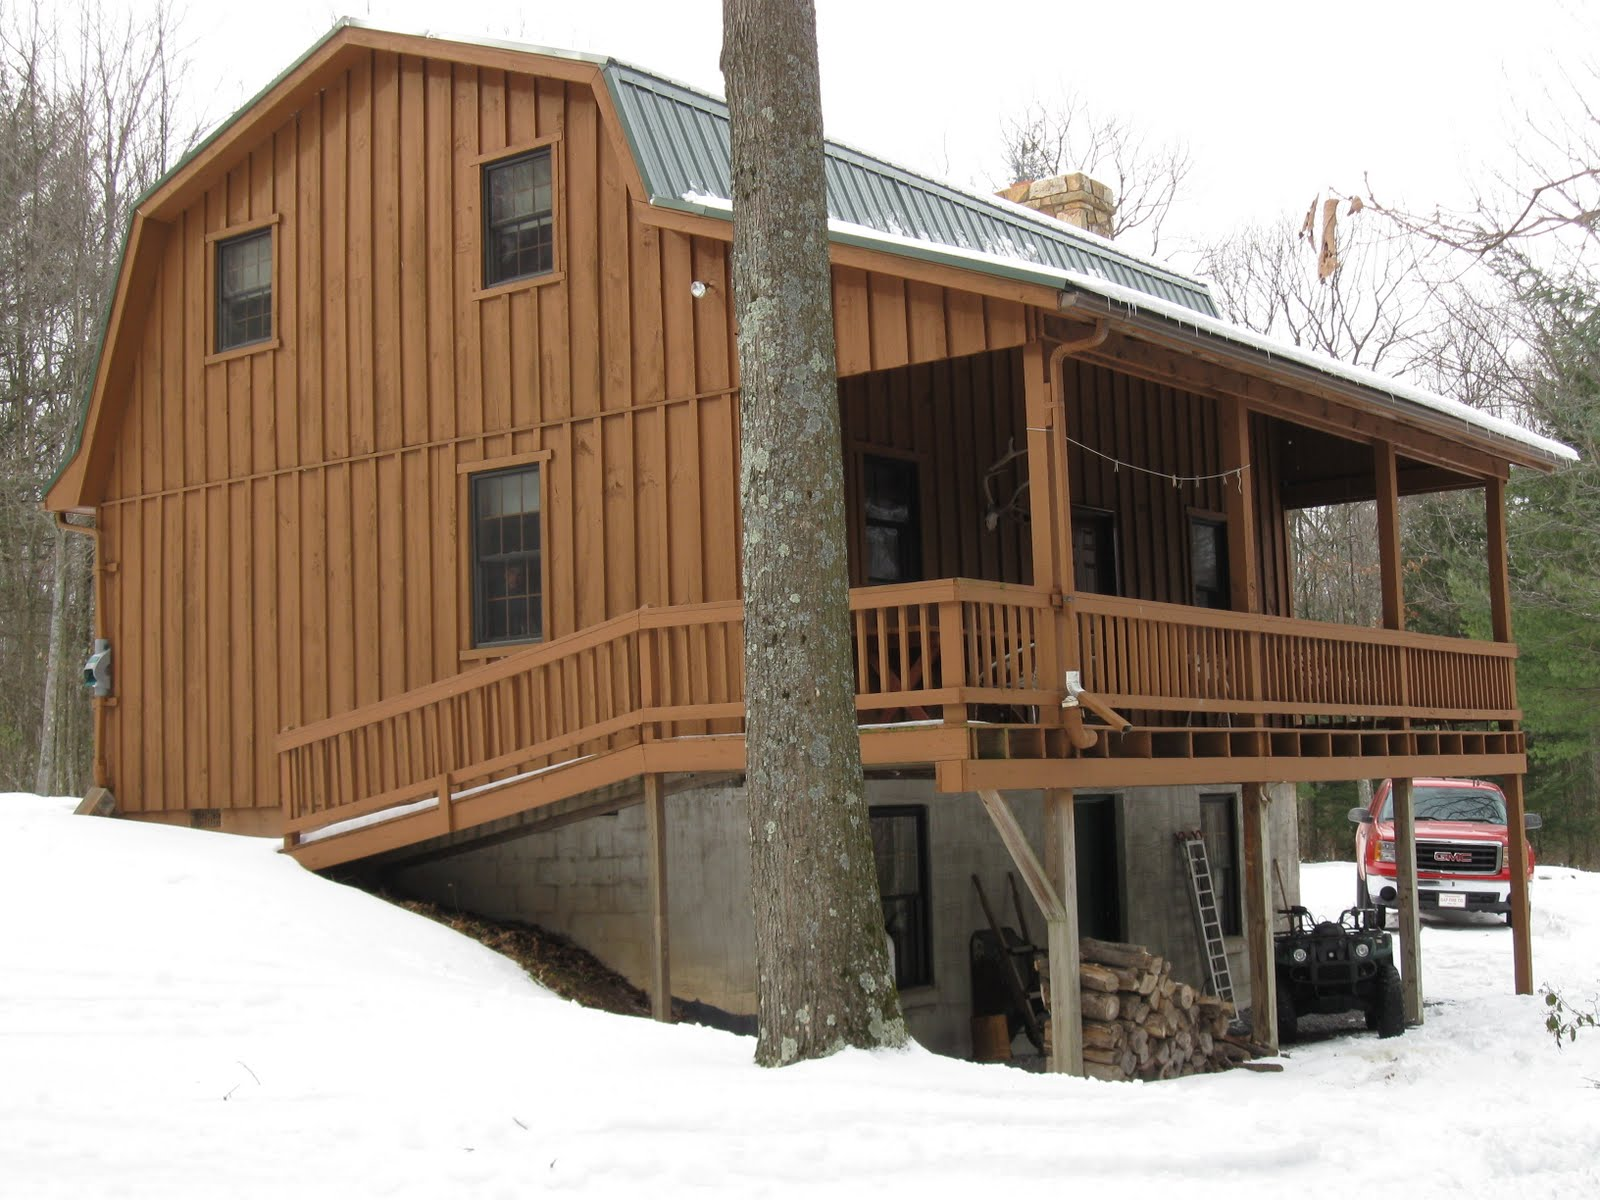 Hemlock Springs Camp Cabin And Land For Sale 154 900